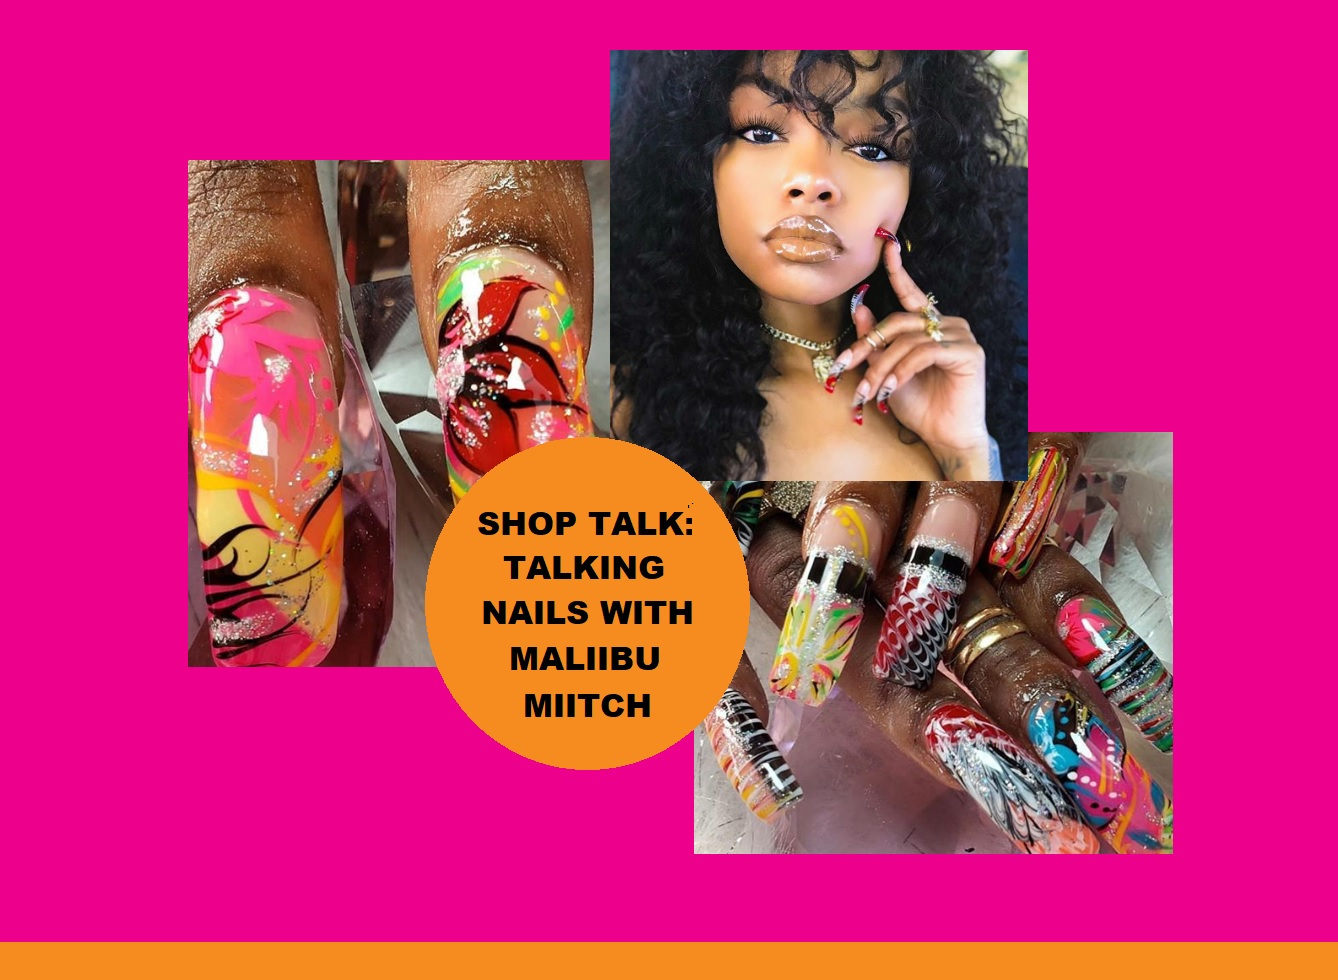 Shop Talk: Talking Nails With Maliibu Miitch